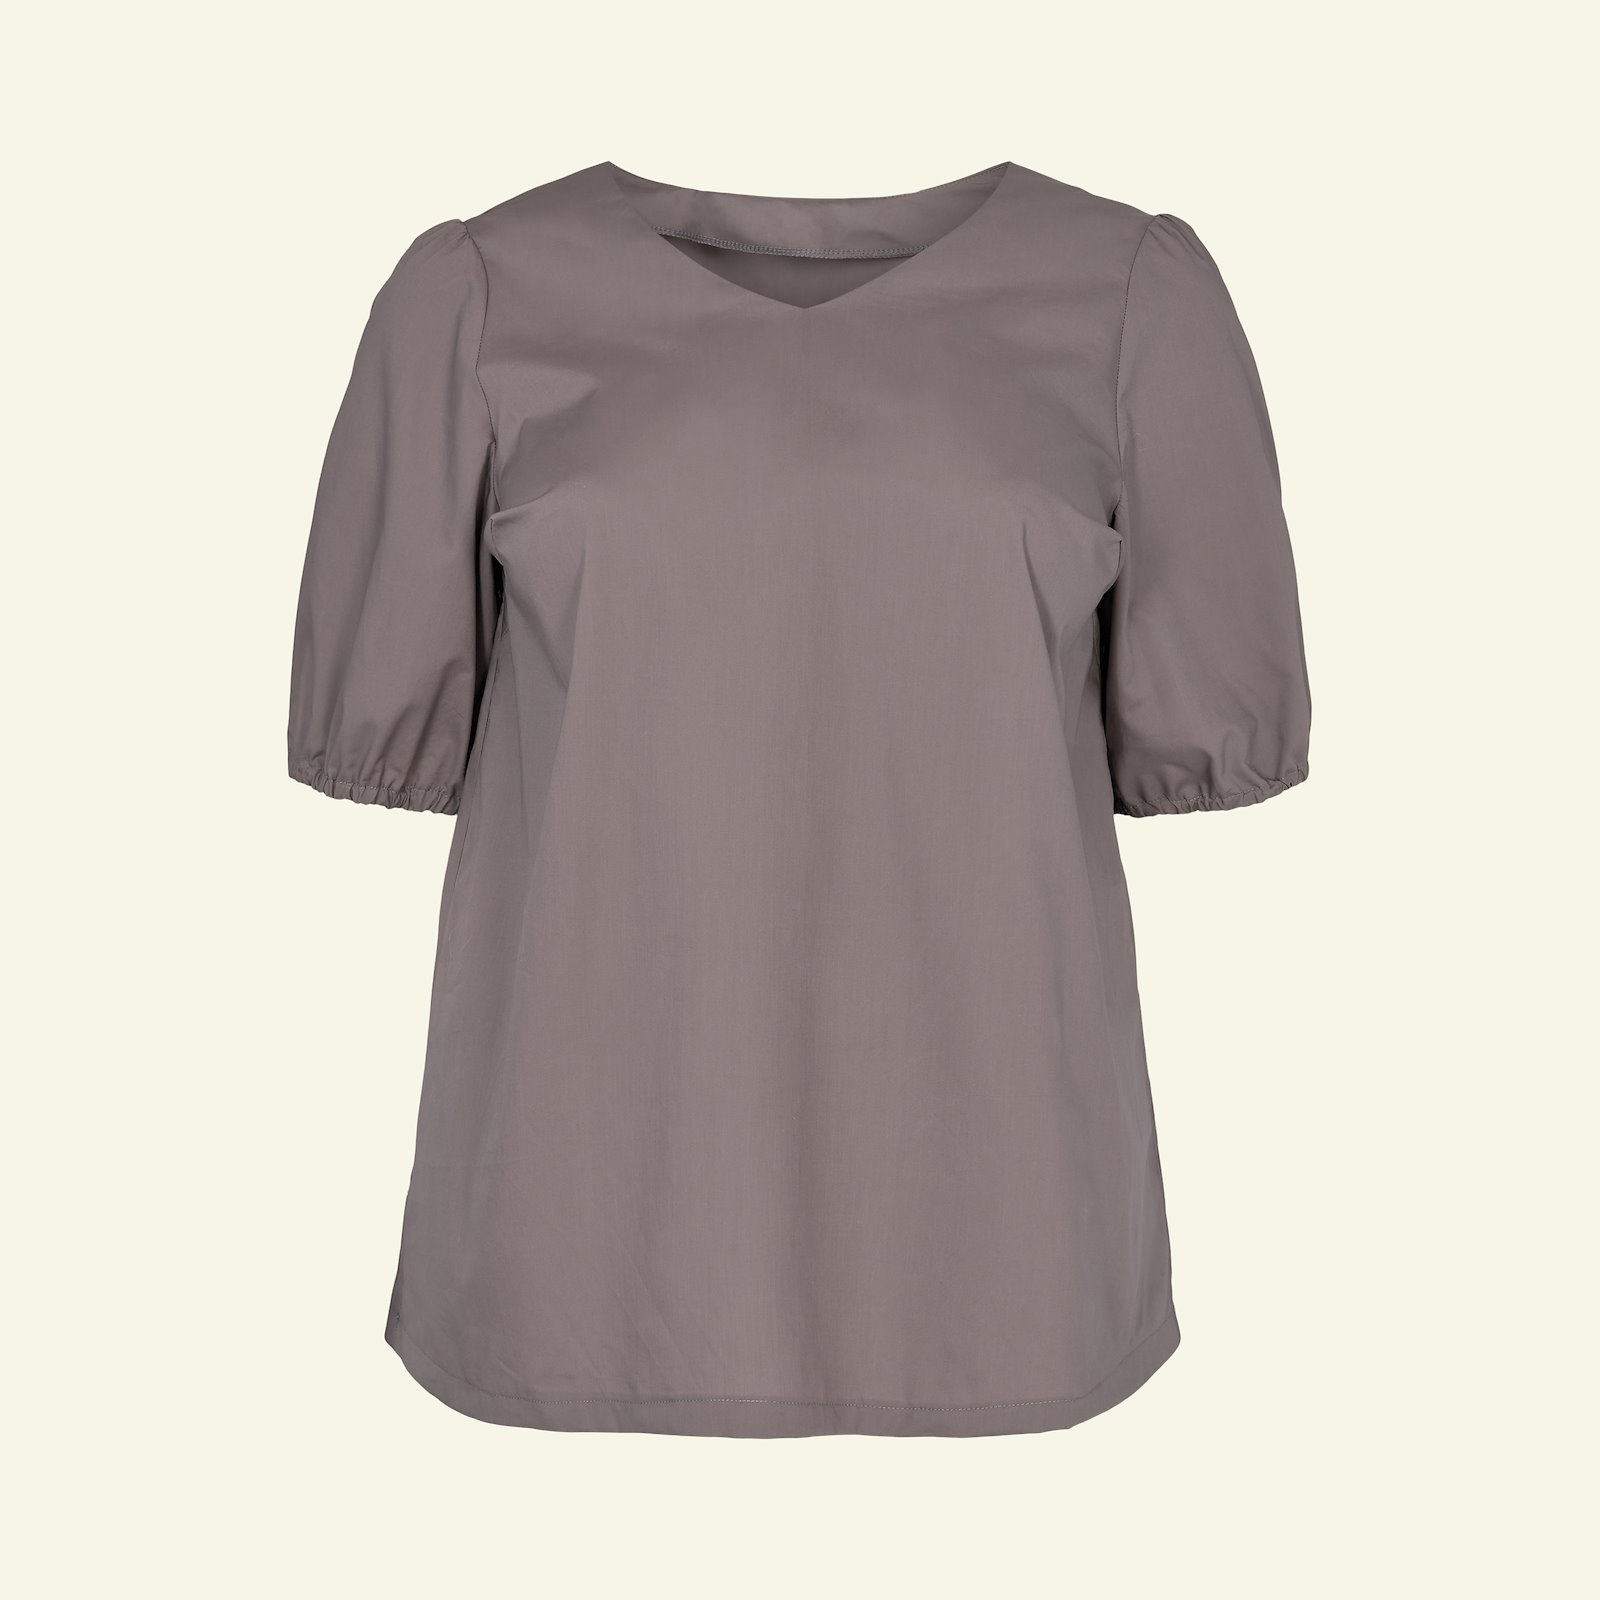 Blouse with long and short sleeve, 46/18 p72006_540121_sskit